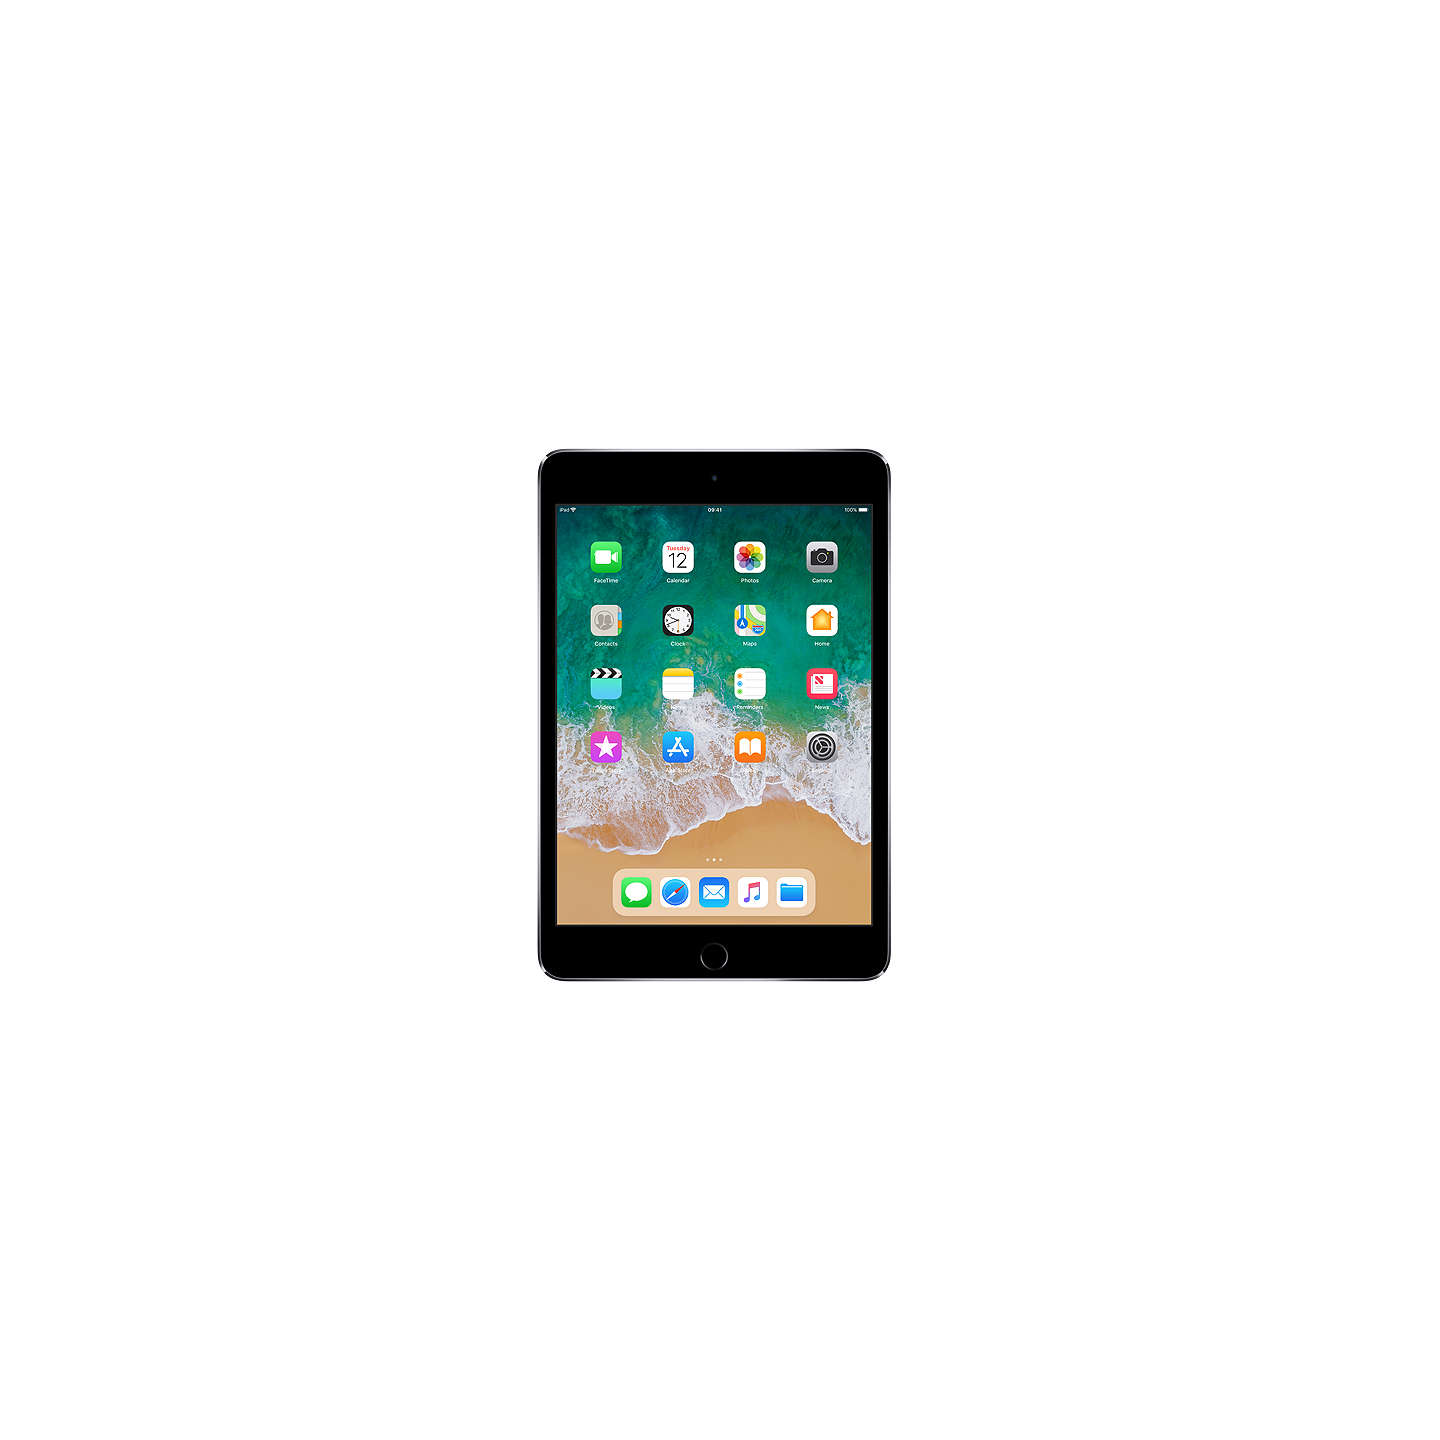 apple ipad mini 4 apple a8 ios 7 9 wi fi 128gb at john lewis. Black Bedroom Furniture Sets. Home Design Ideas